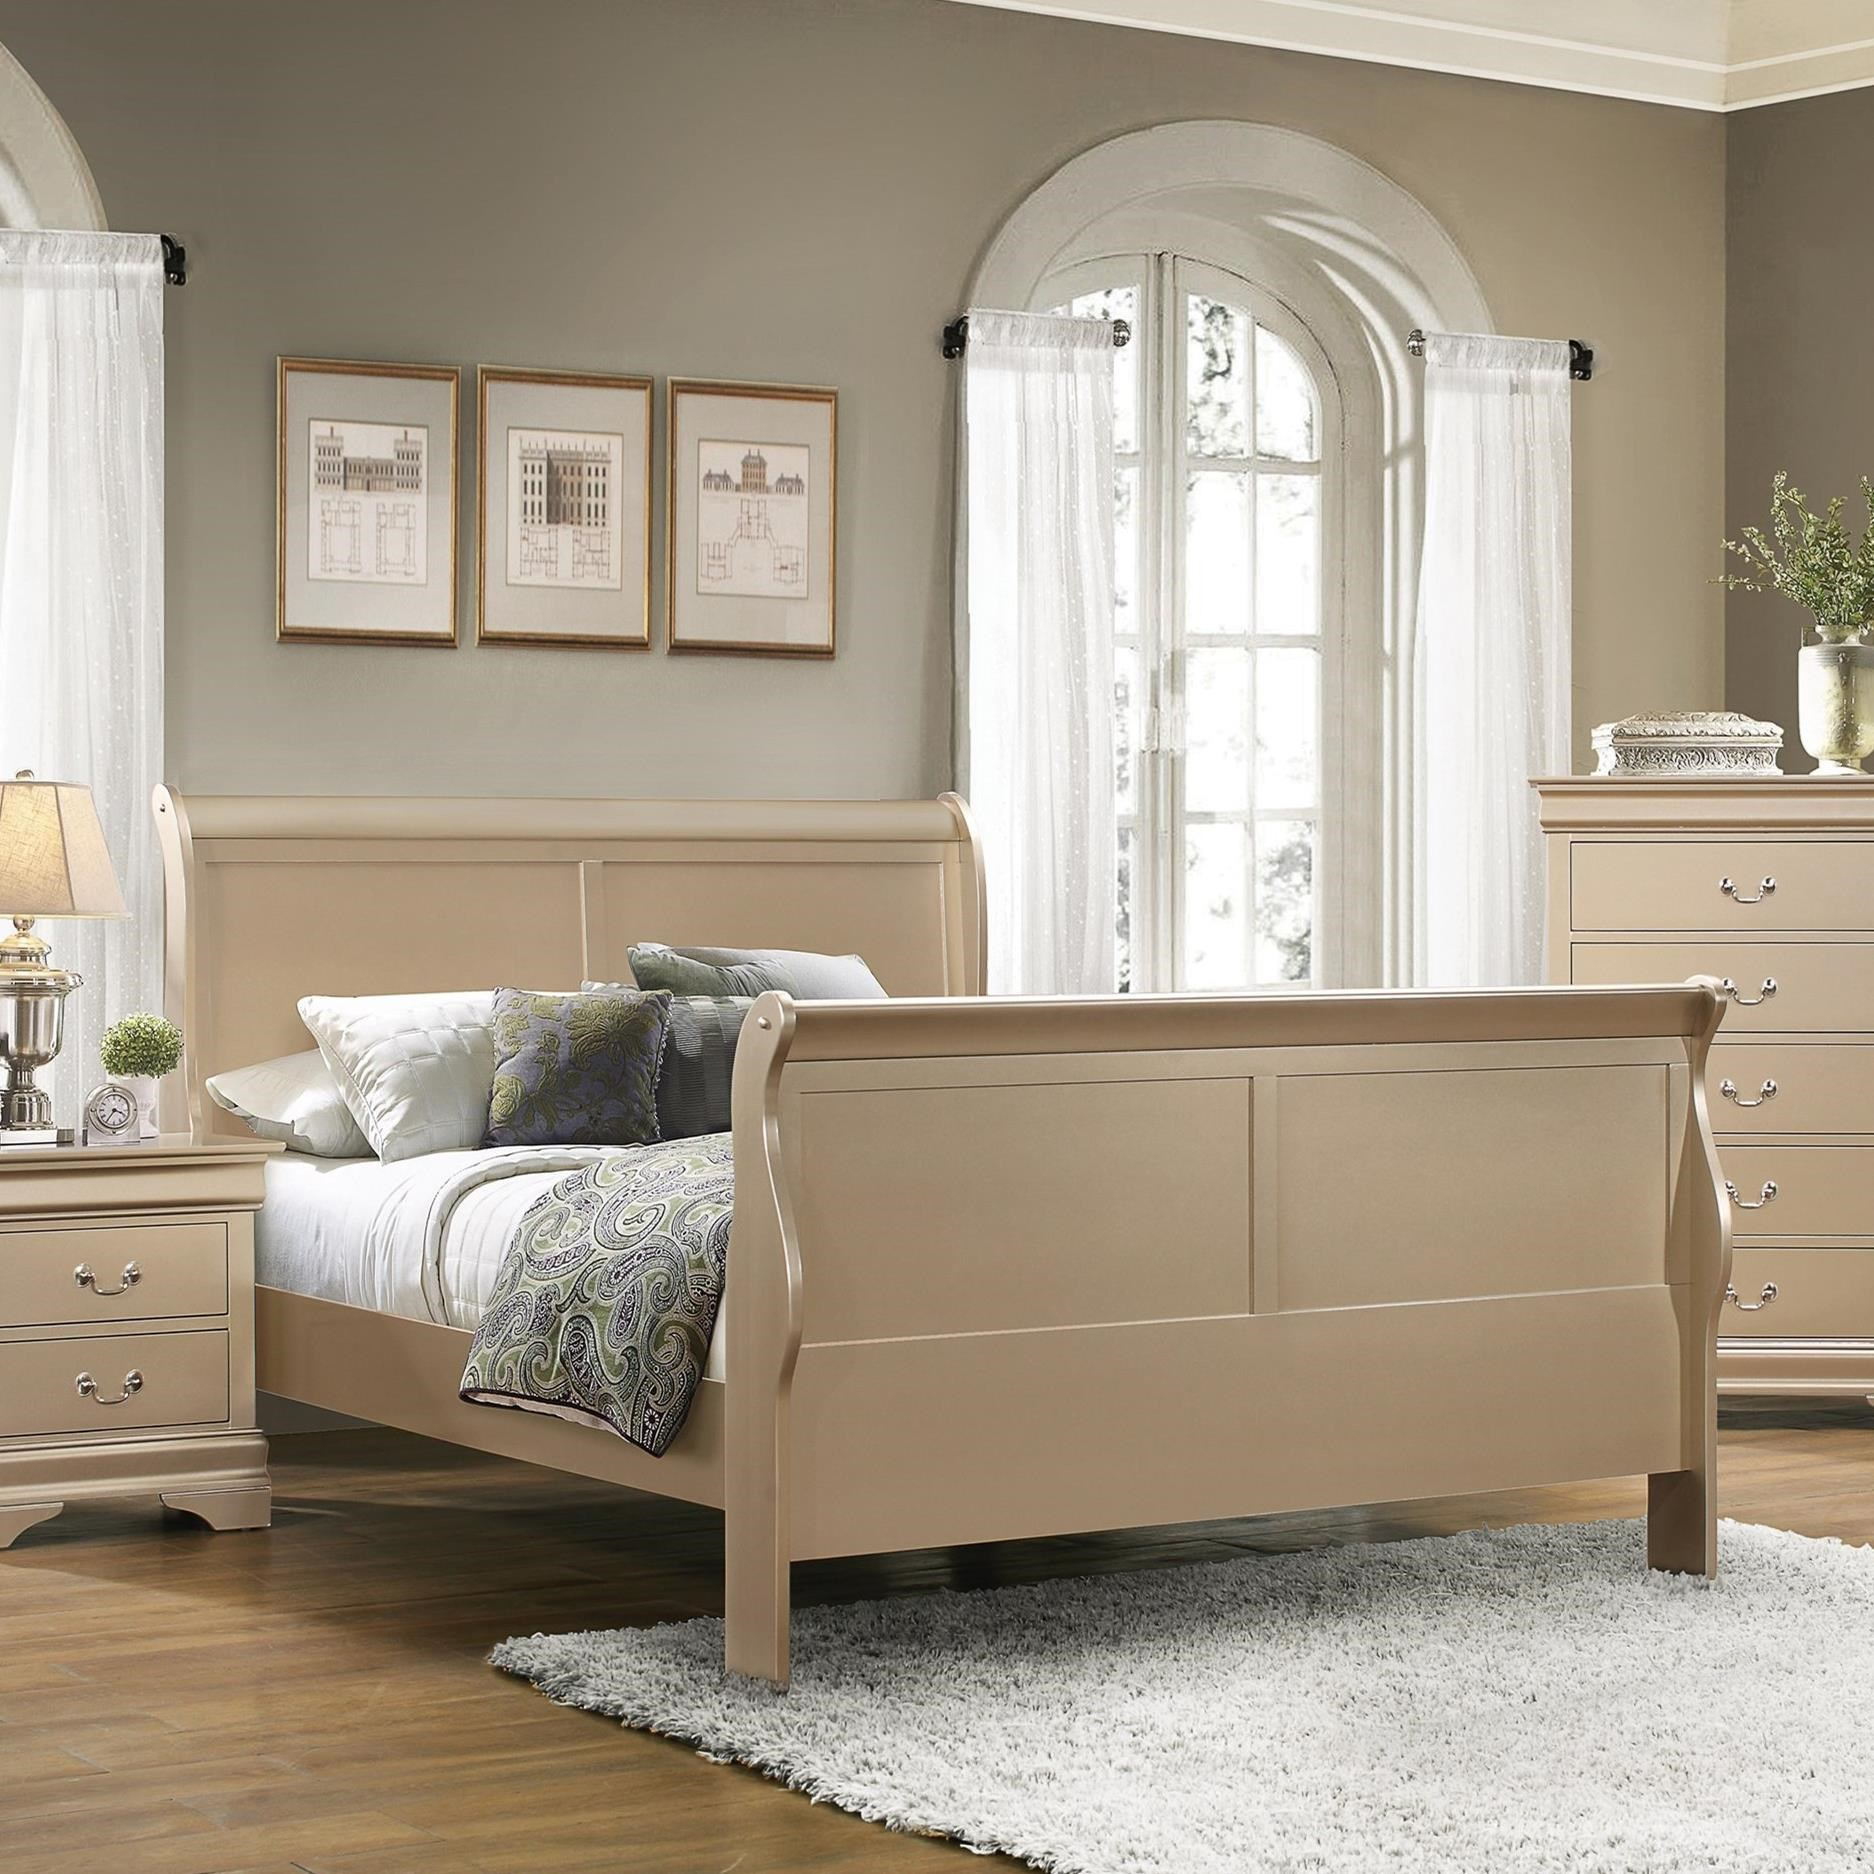 5 pc queen set, louis philippe (bed, dresser, chest, nightstand, mirror)